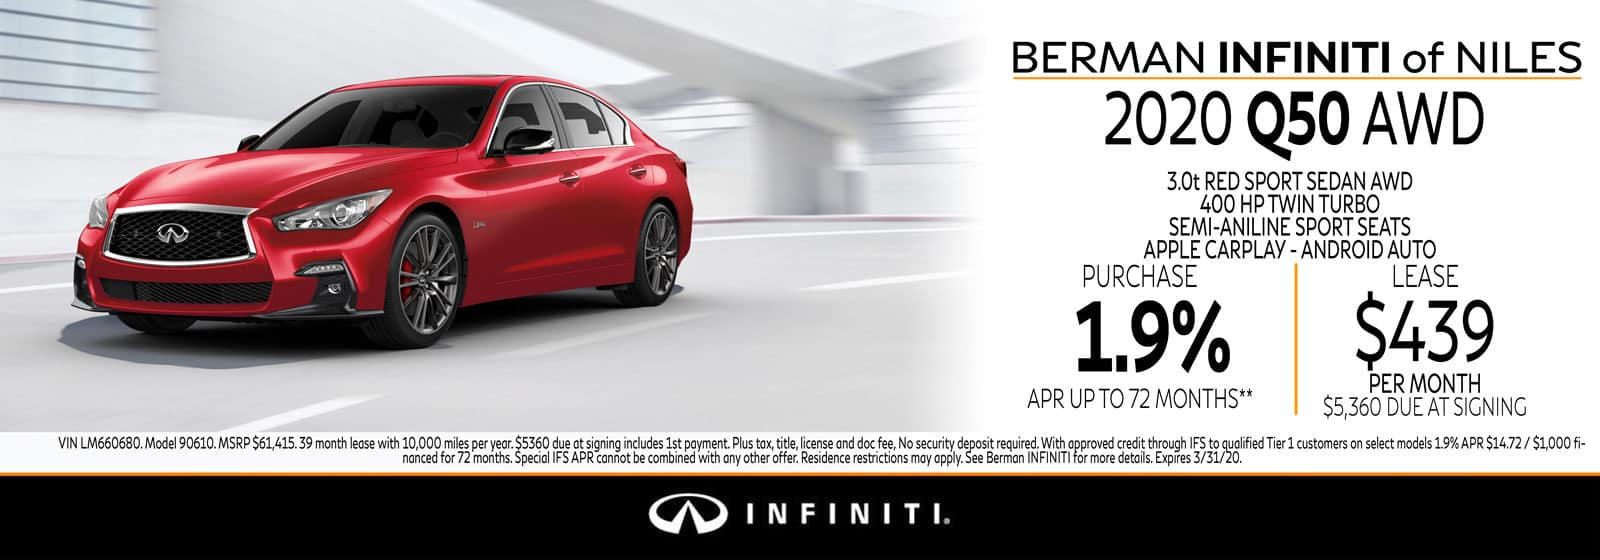 New 2020 INFINITI Q50 March Offer at Berman INFINITI of Niles!